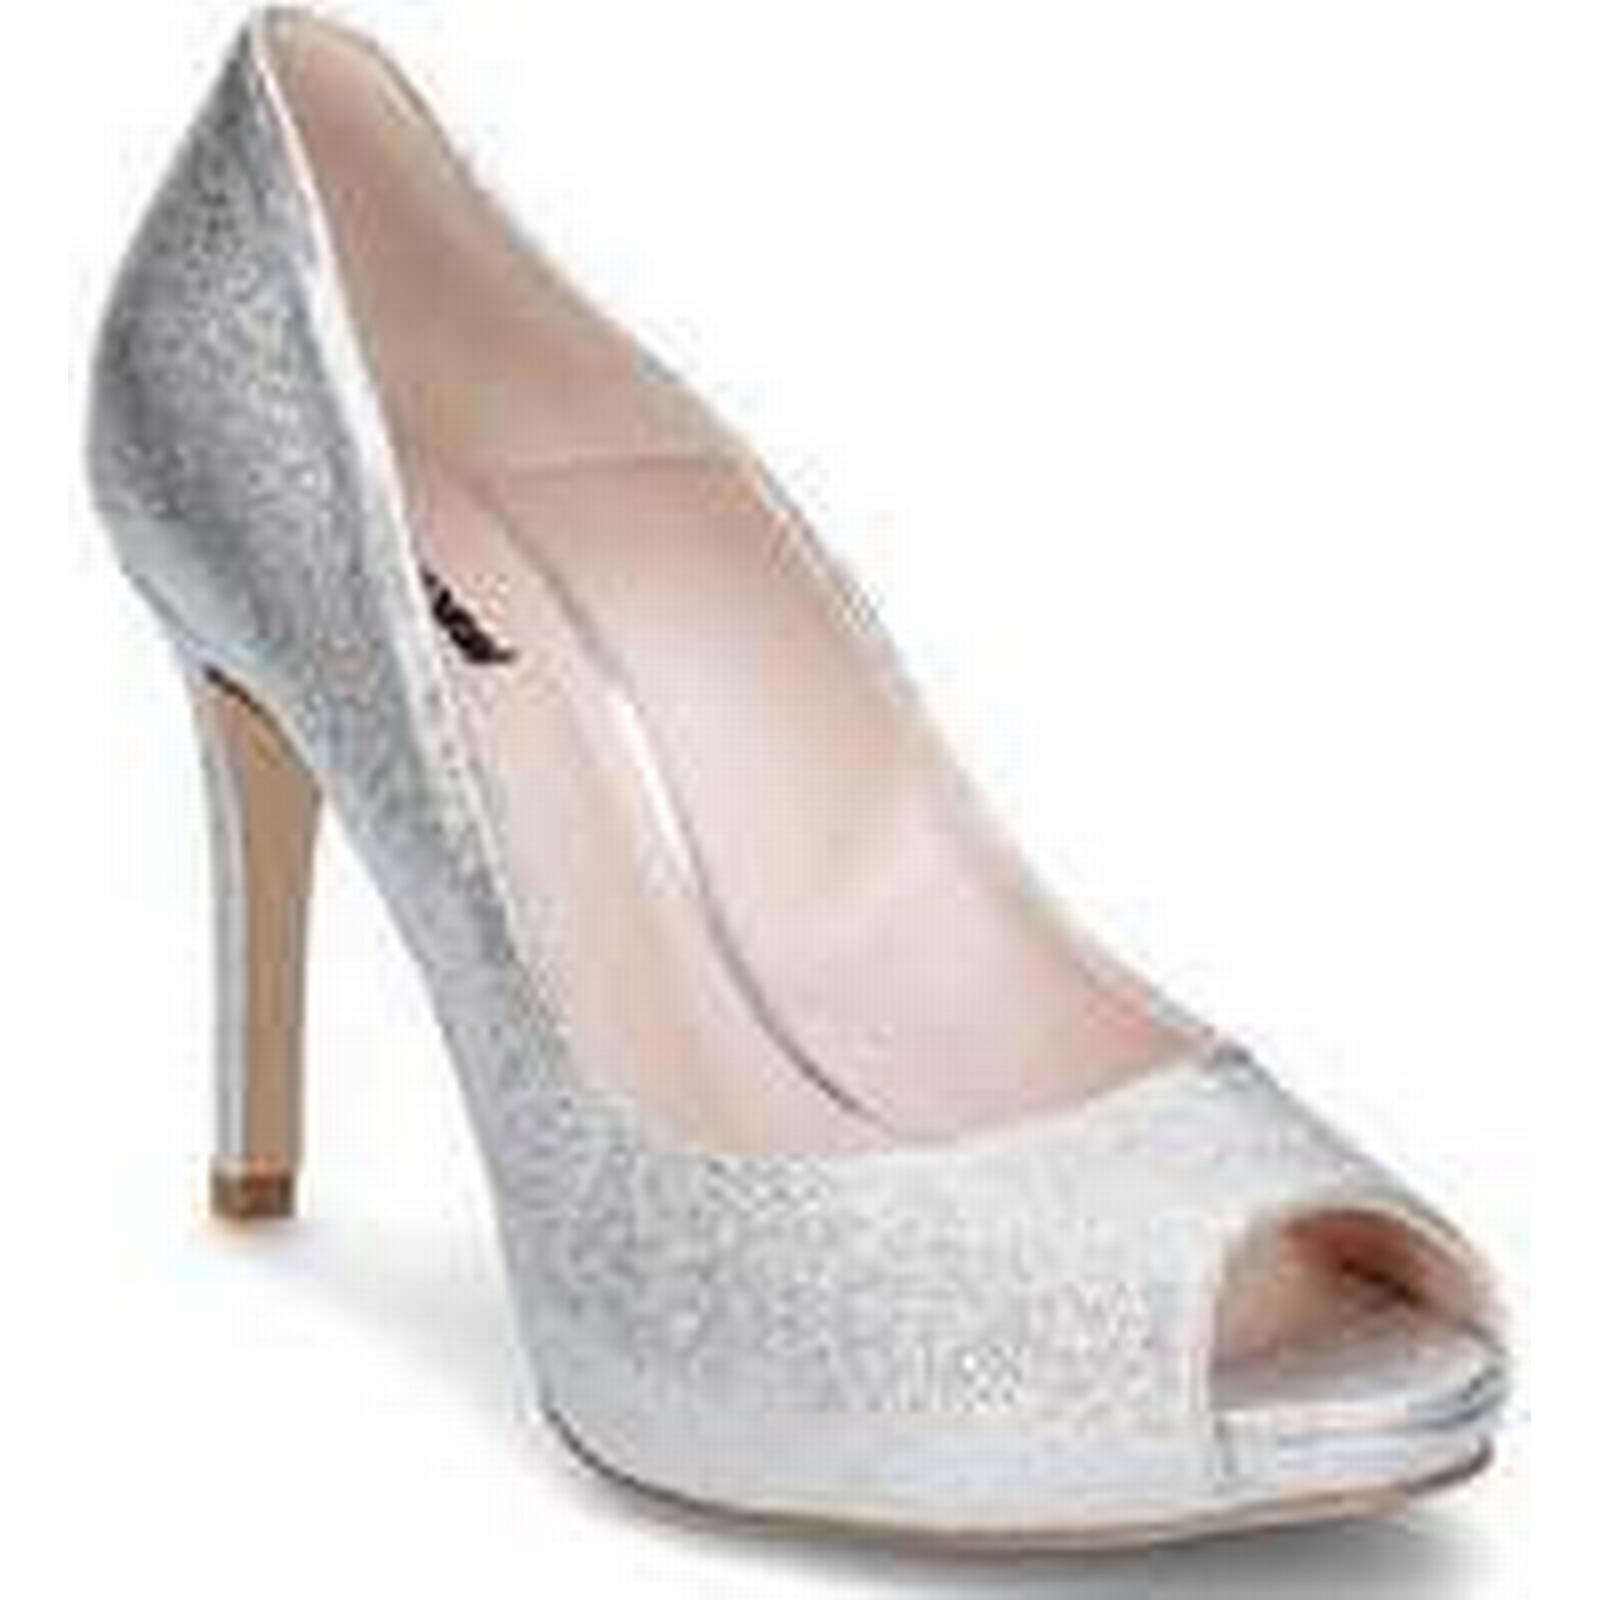 Spartoo.co.uk Court Gino Rossi Olivia women's Court Spartoo.co.uk Shoes in Silver d022fc